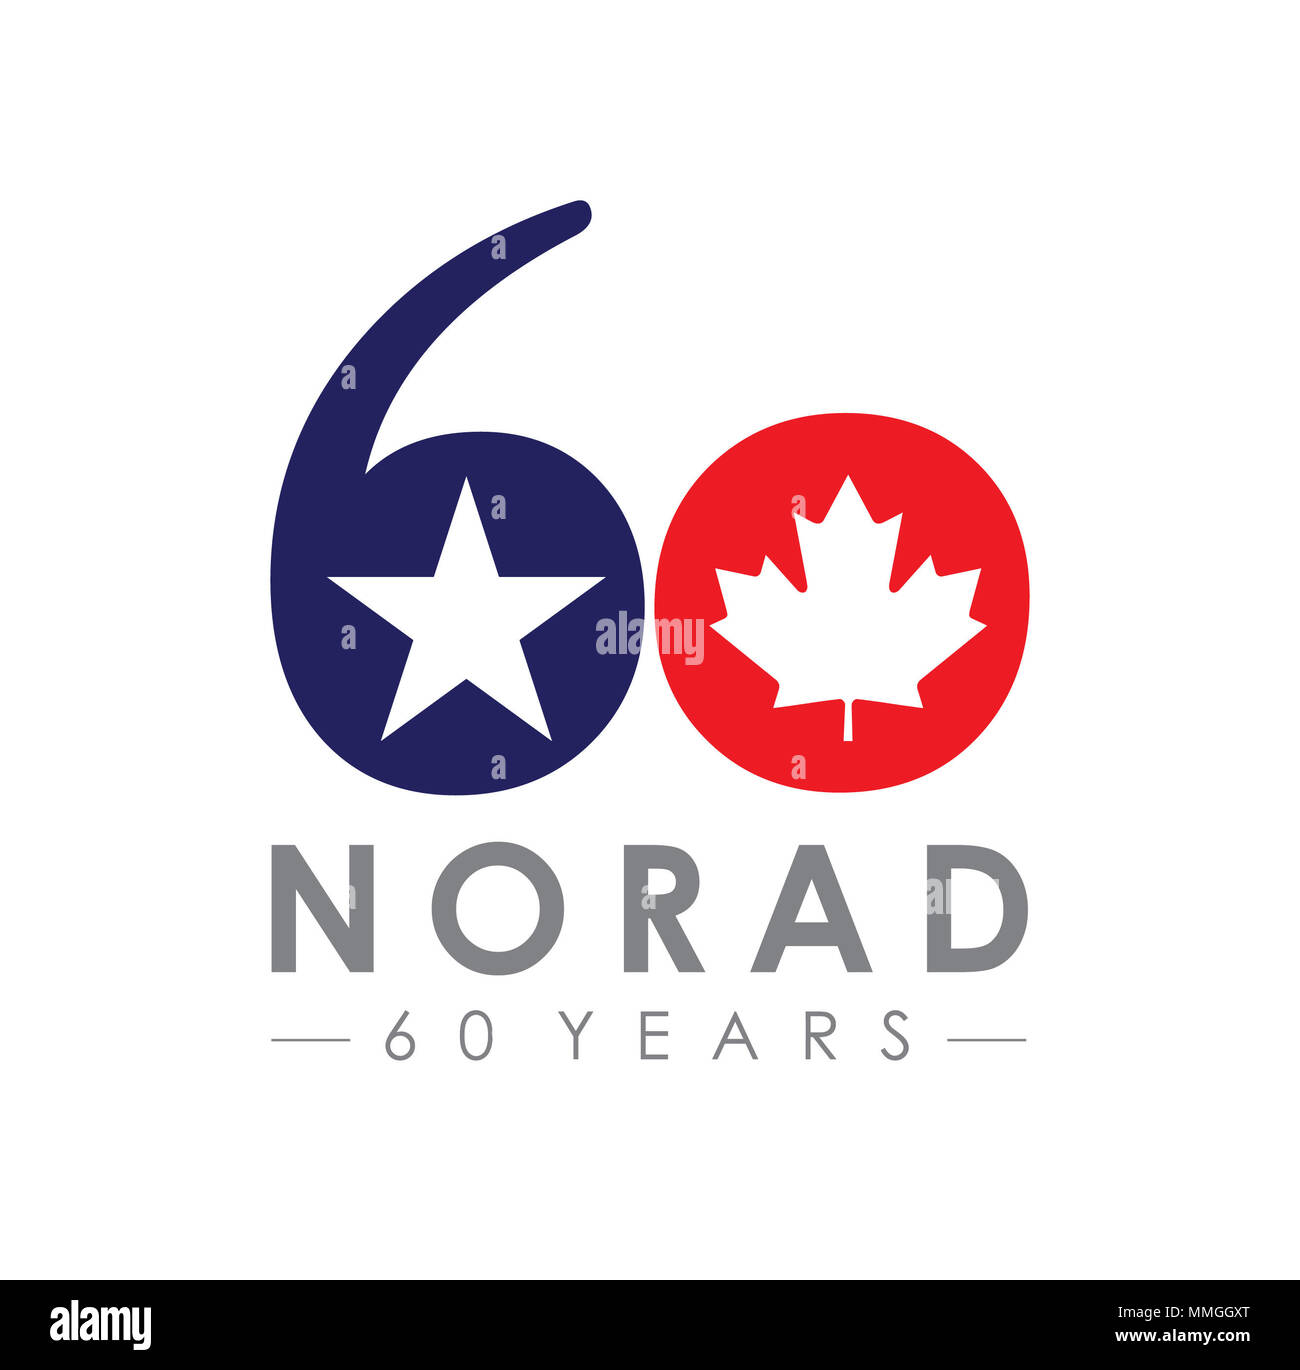 This graphic was one of three created for a design competition honoring the 60th anniversary of the North American Aerospace Defense Command on Peterson Air Force Base, Colorado, for use across social media, print collateral, video products and the tail flash of an F/A-18 Hornet. The design combines the colors and symbols synonymous with both Canada and the United States as they are the partnered countries of NORAD. The official graphic will be picked and released in 2018. (U.S. Air Force graphic by Senior Airman Dennis Hoffman) - Stock Image